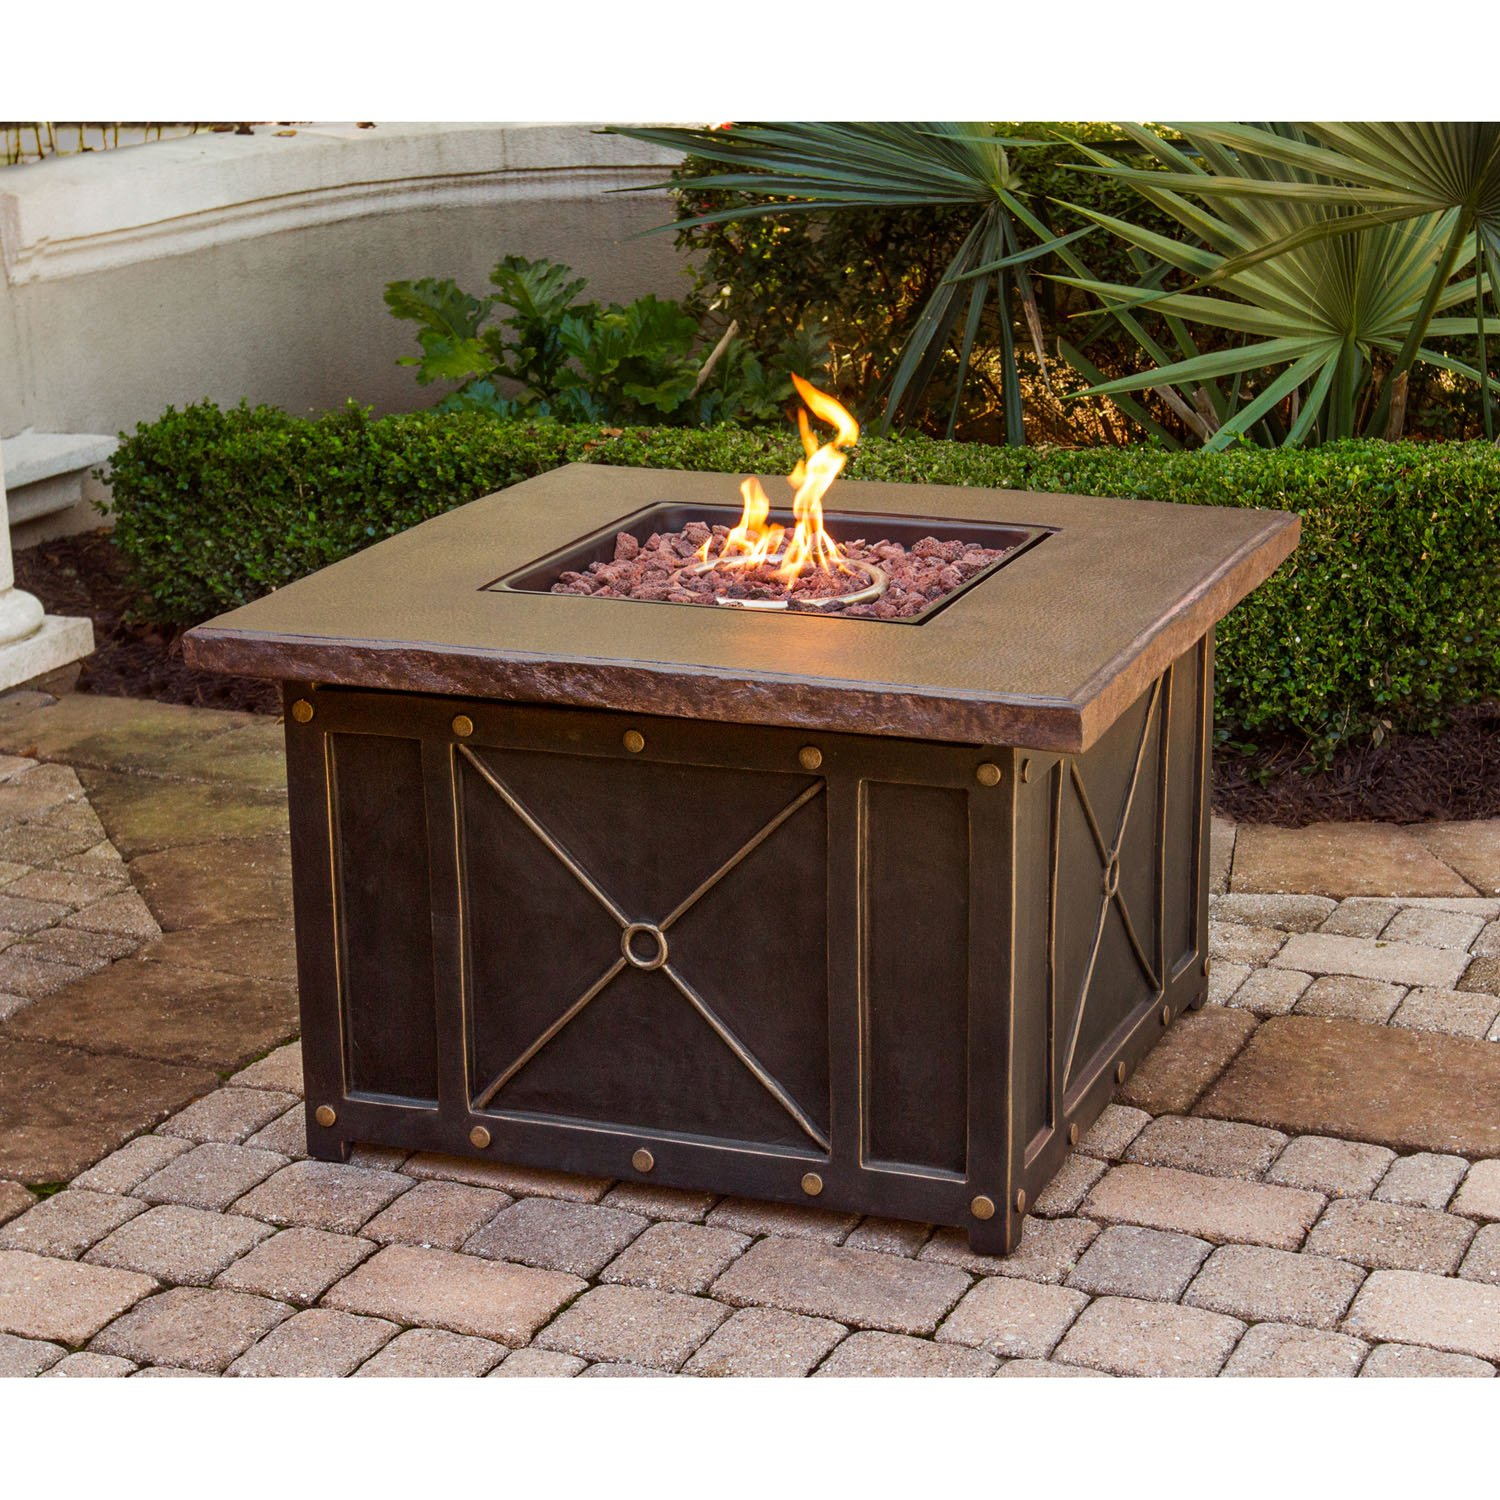 Amazon Cambridge CLASSIC1PCFP Square Gas Fire Pit with